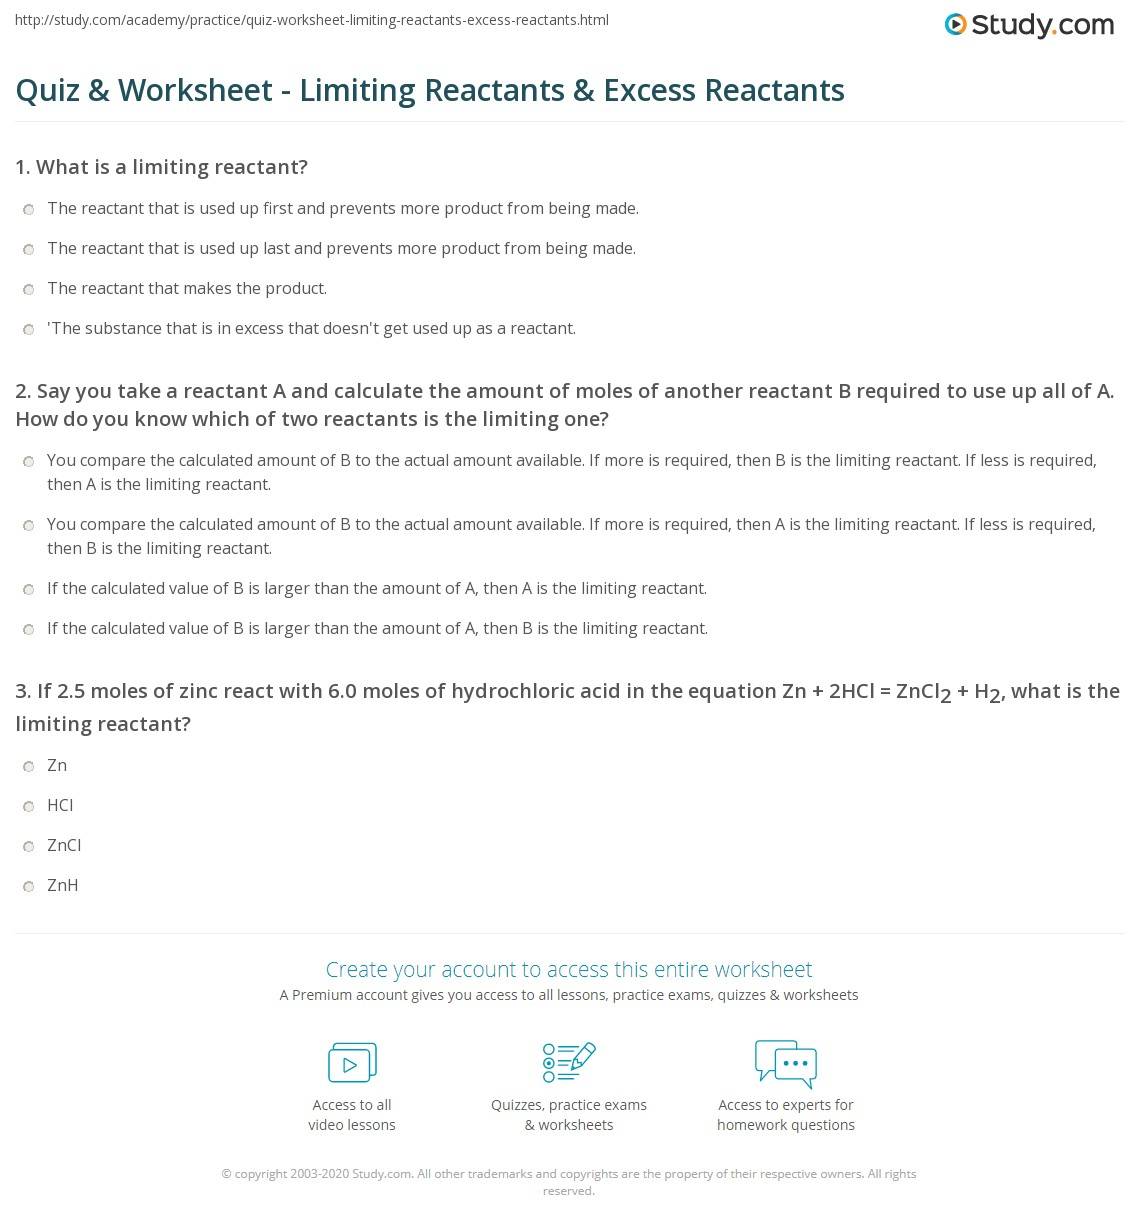 quiz worksheet limiting reactants excess reactants. Black Bedroom Furniture Sets. Home Design Ideas